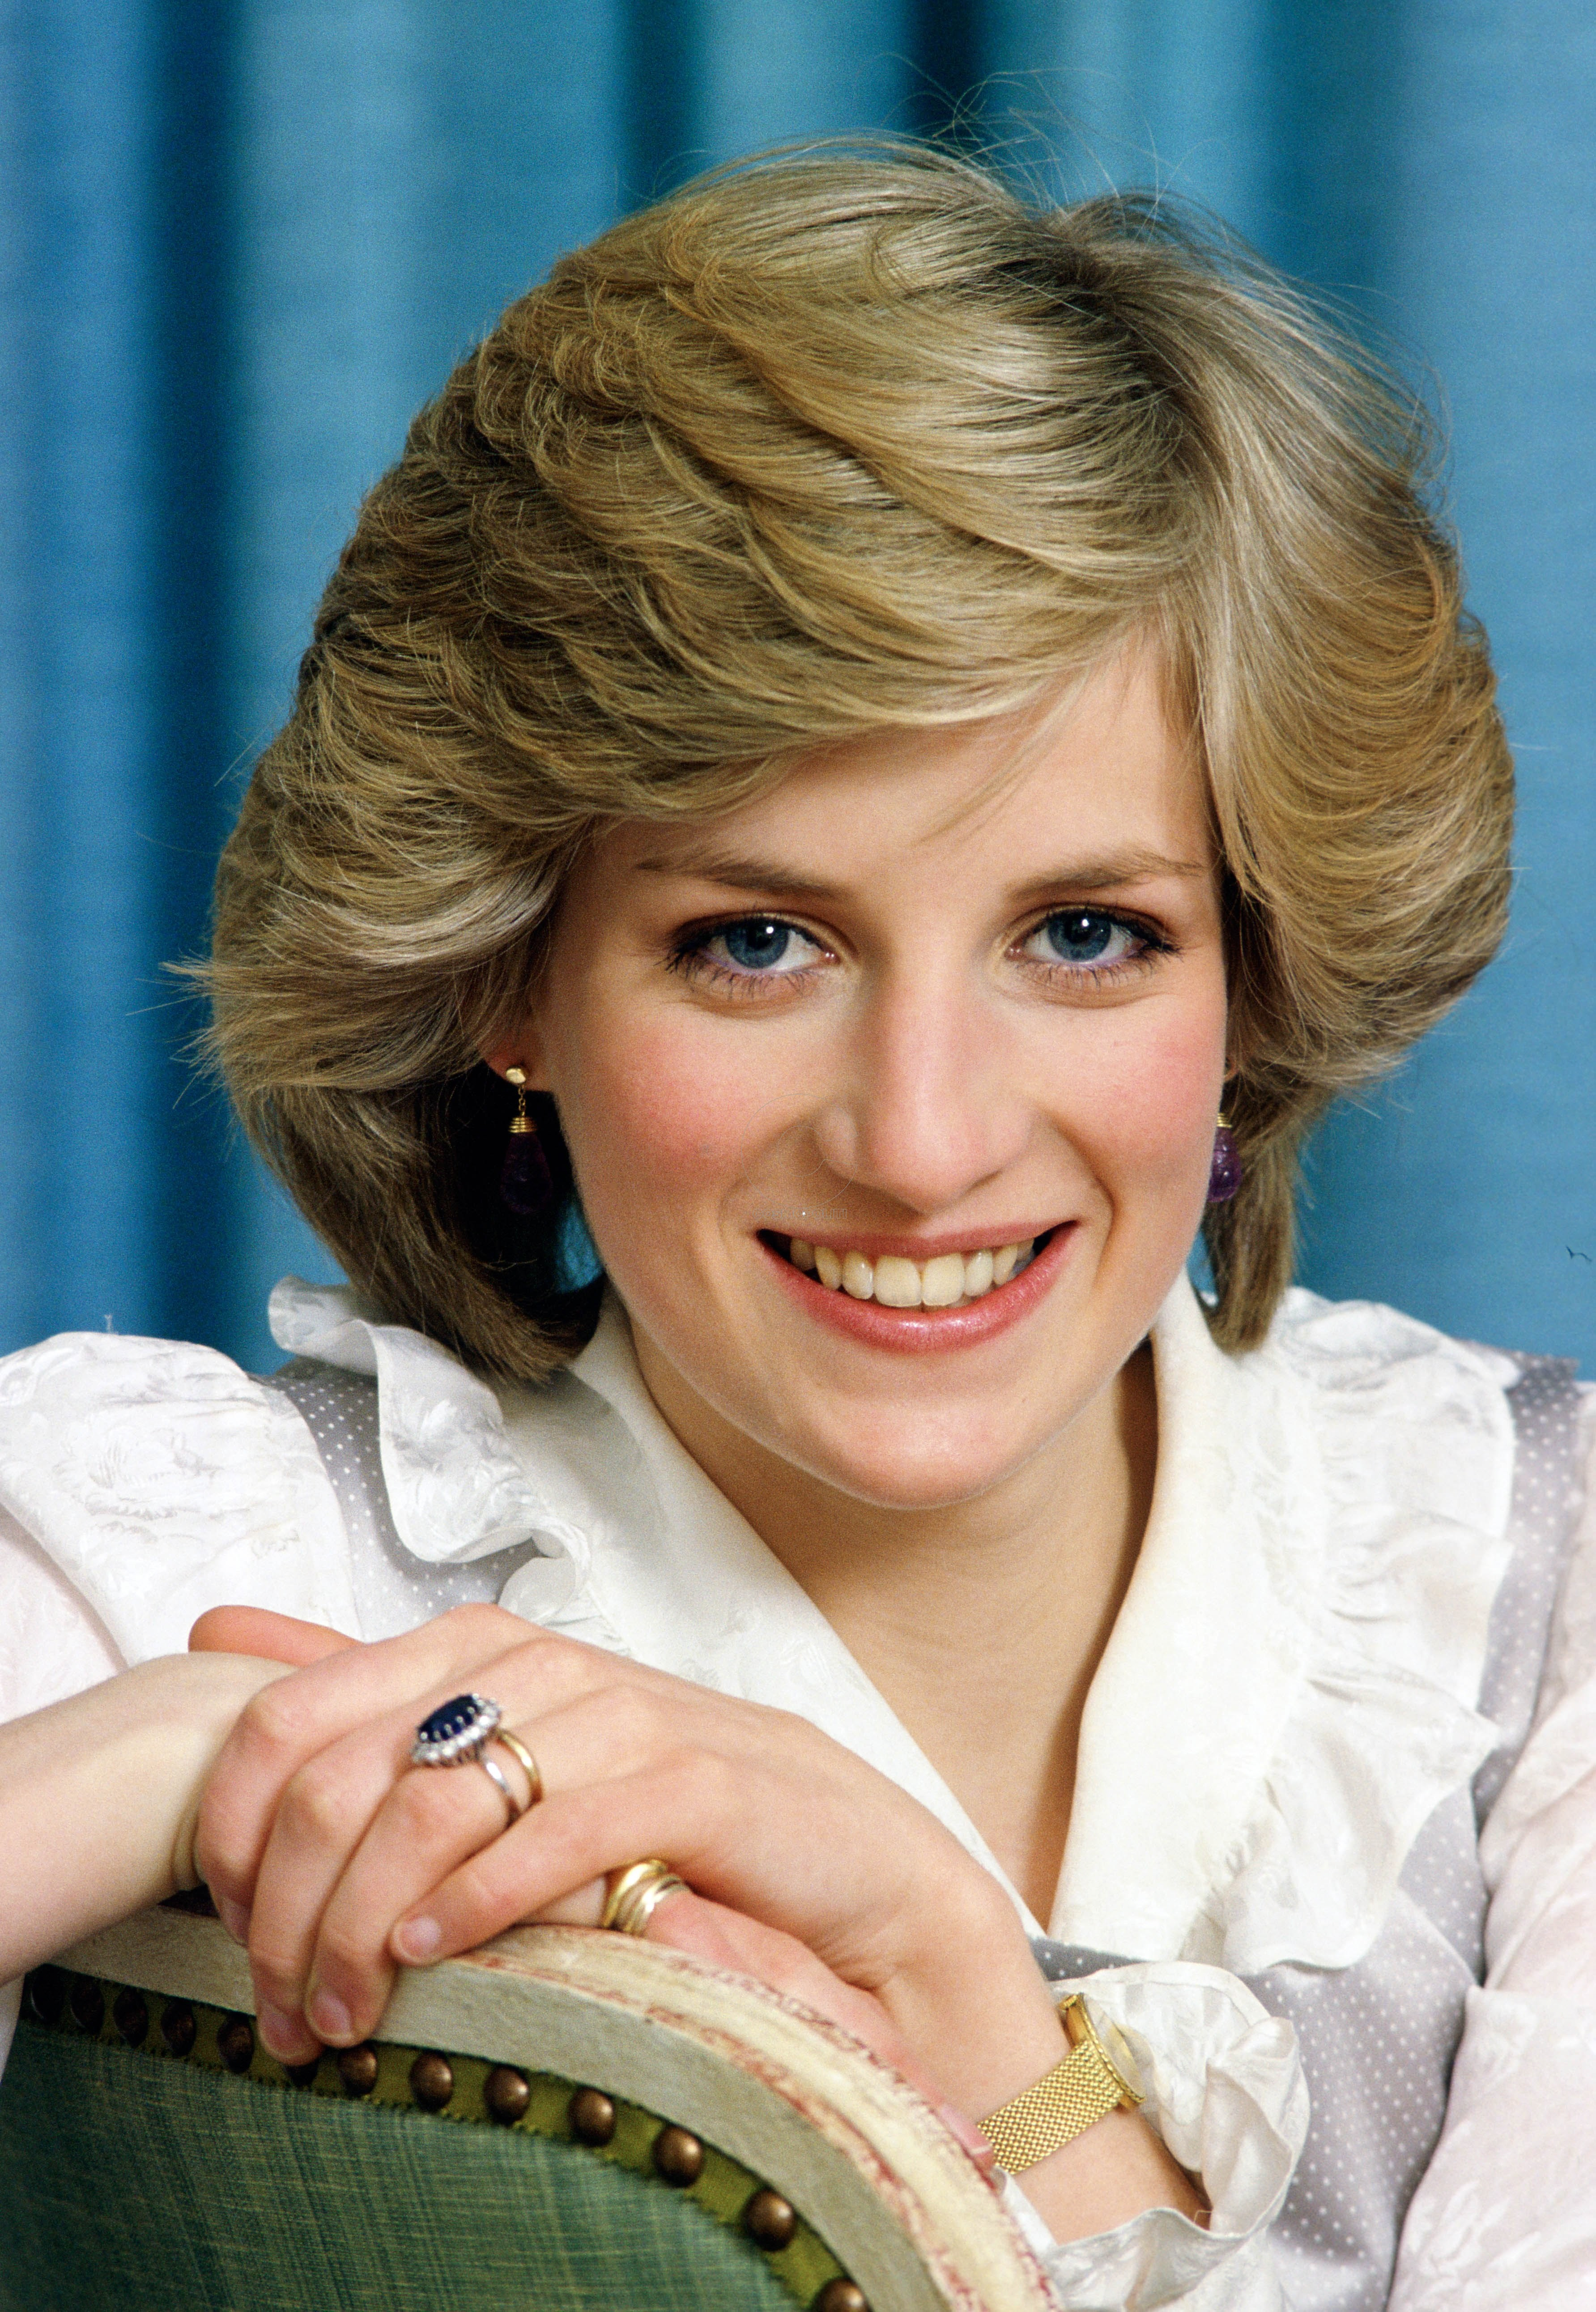 UNITED KINGDOM - FEBRUARY 01: Diana, Princess of Wales at home in Kensington Palace (Photo by Tim Graham/Getty Images)